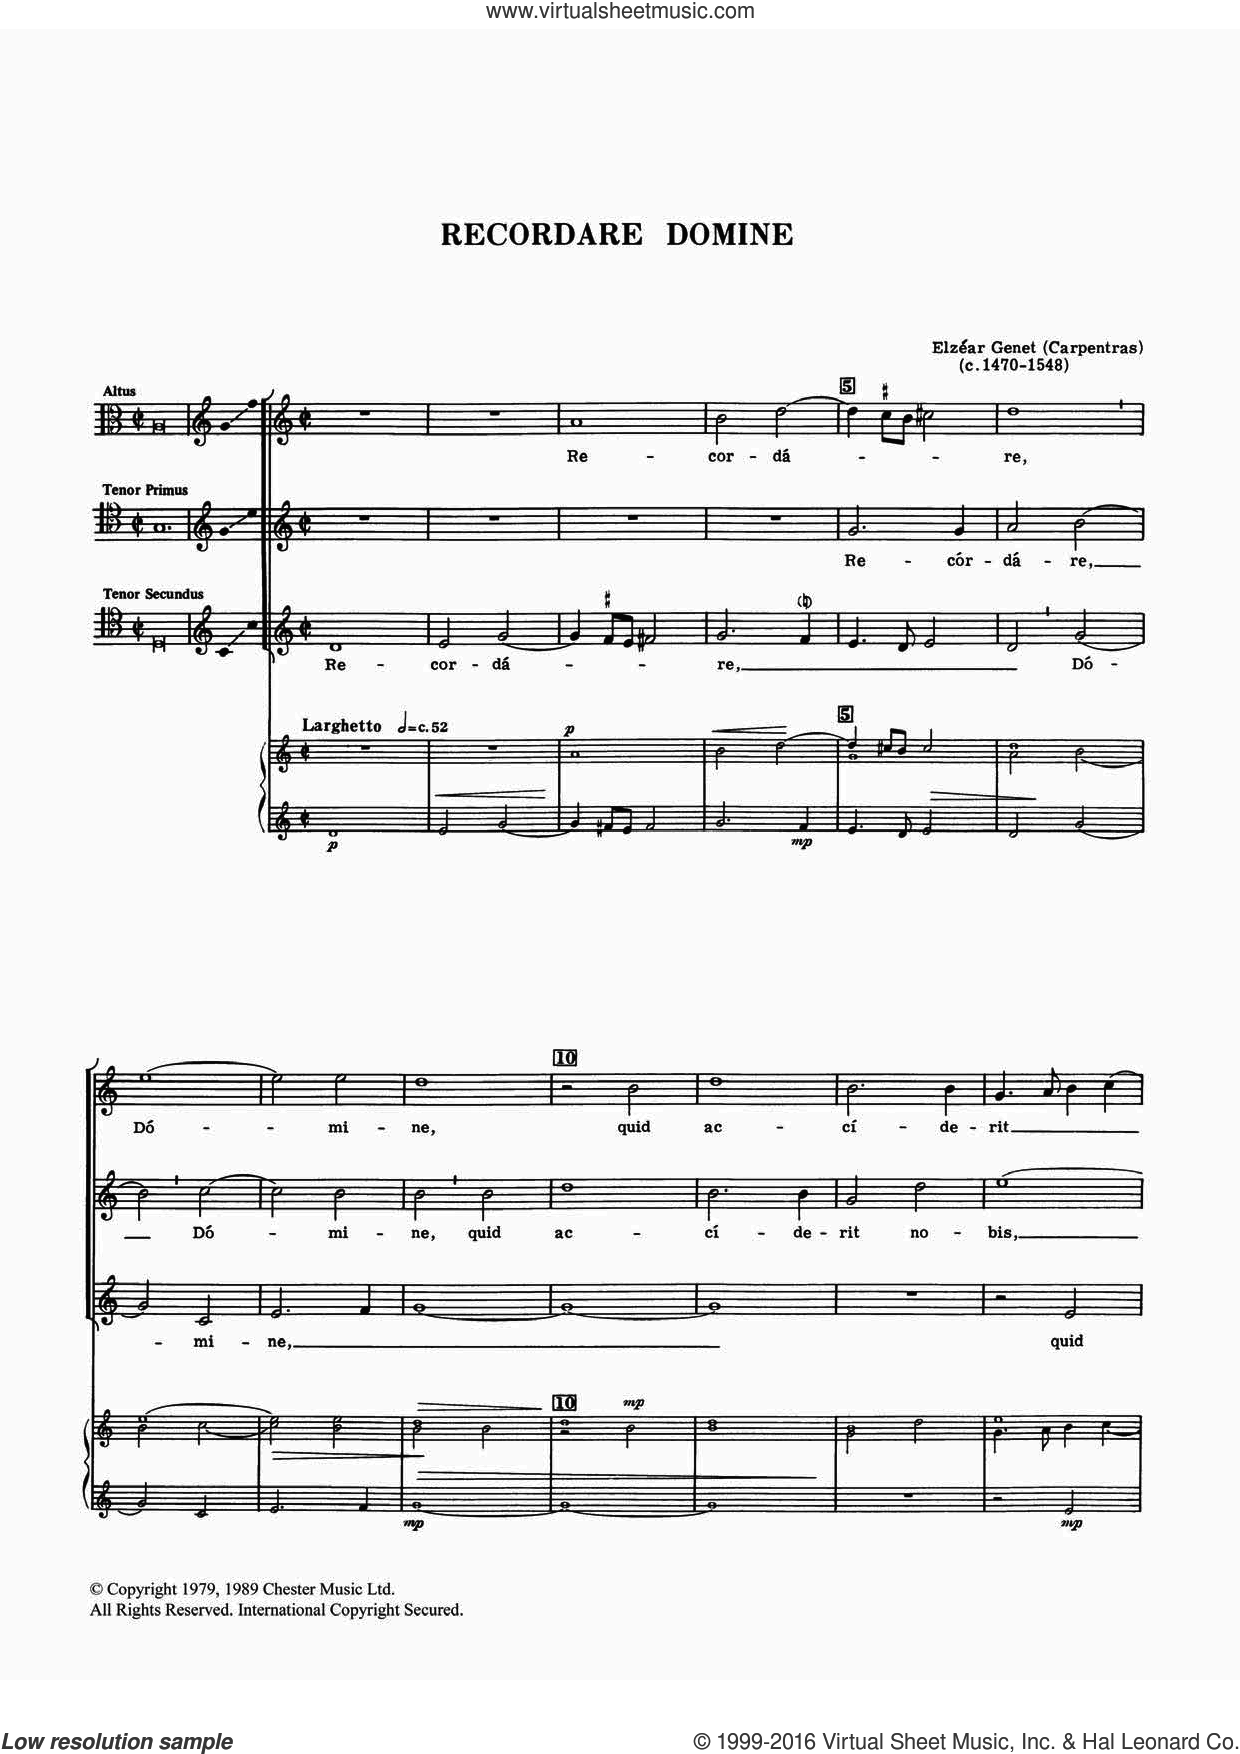 Recordare Domine sheet music for voice, piano or guitar by Elzear Genet, classical score, intermediate. Score Image Preview.